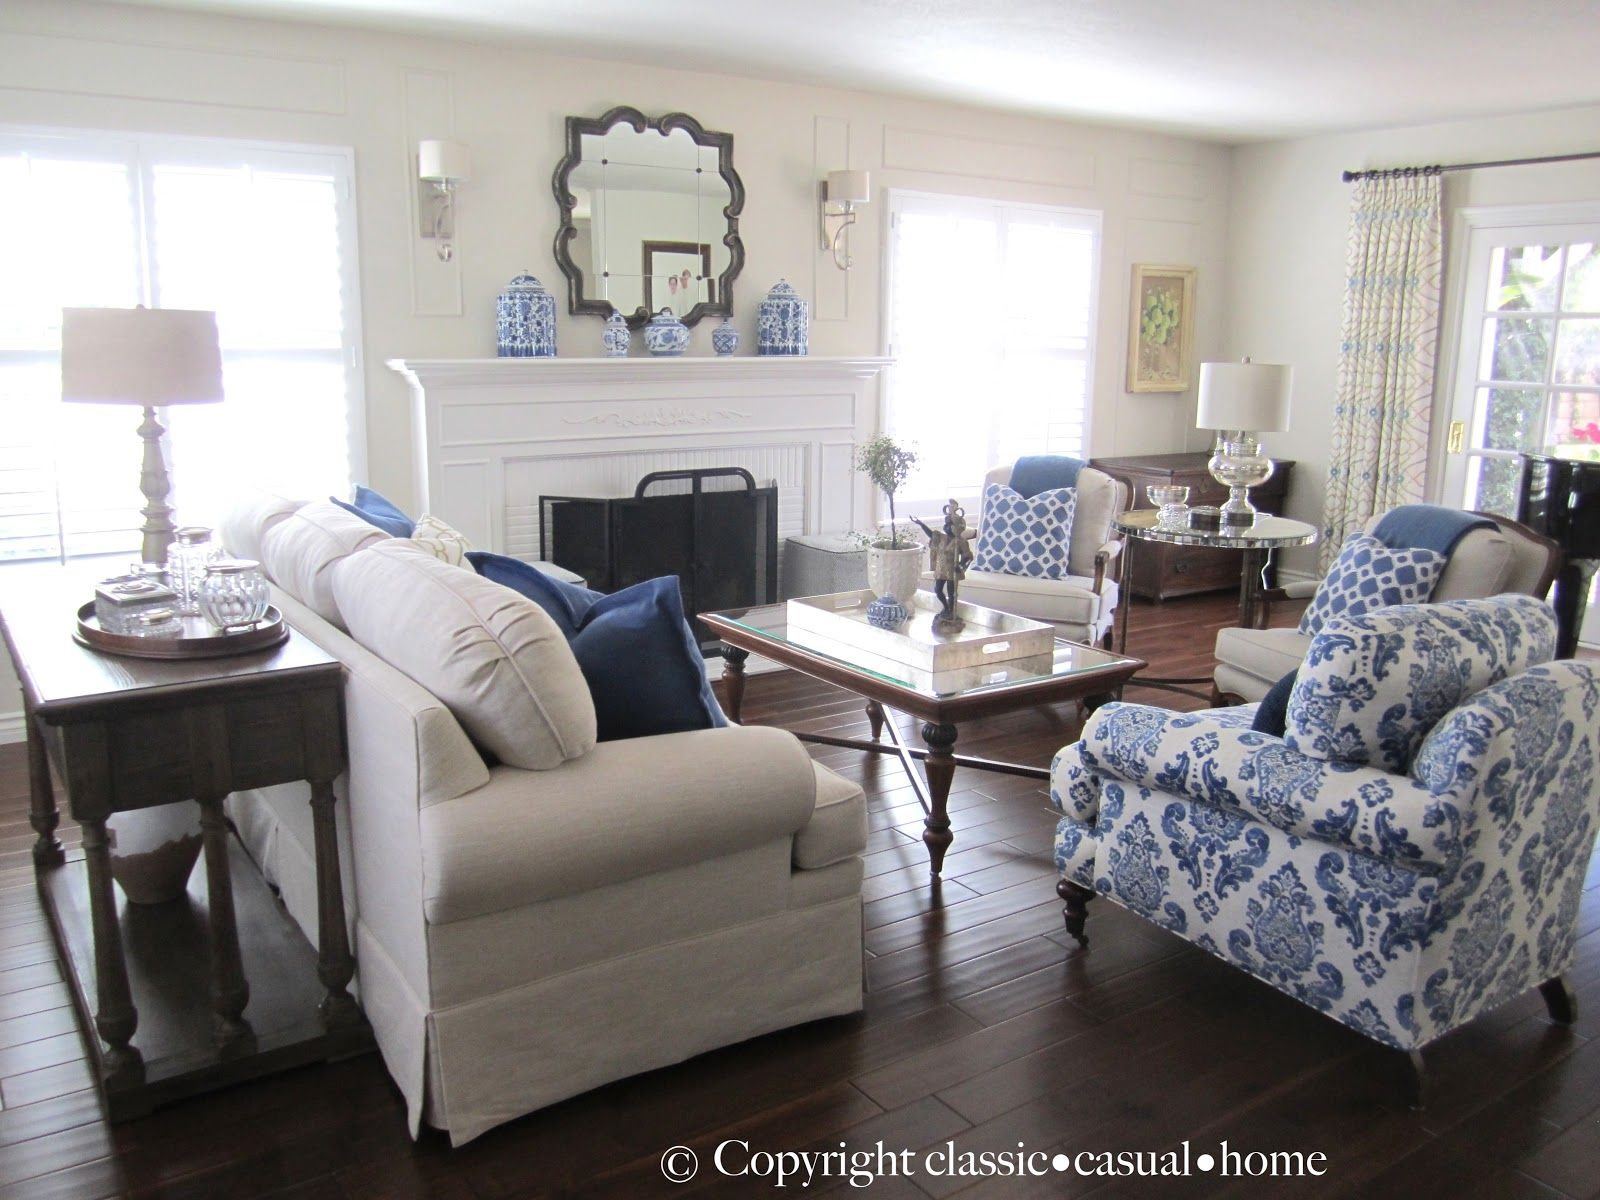 Blue, White And Silver: Timeless Design